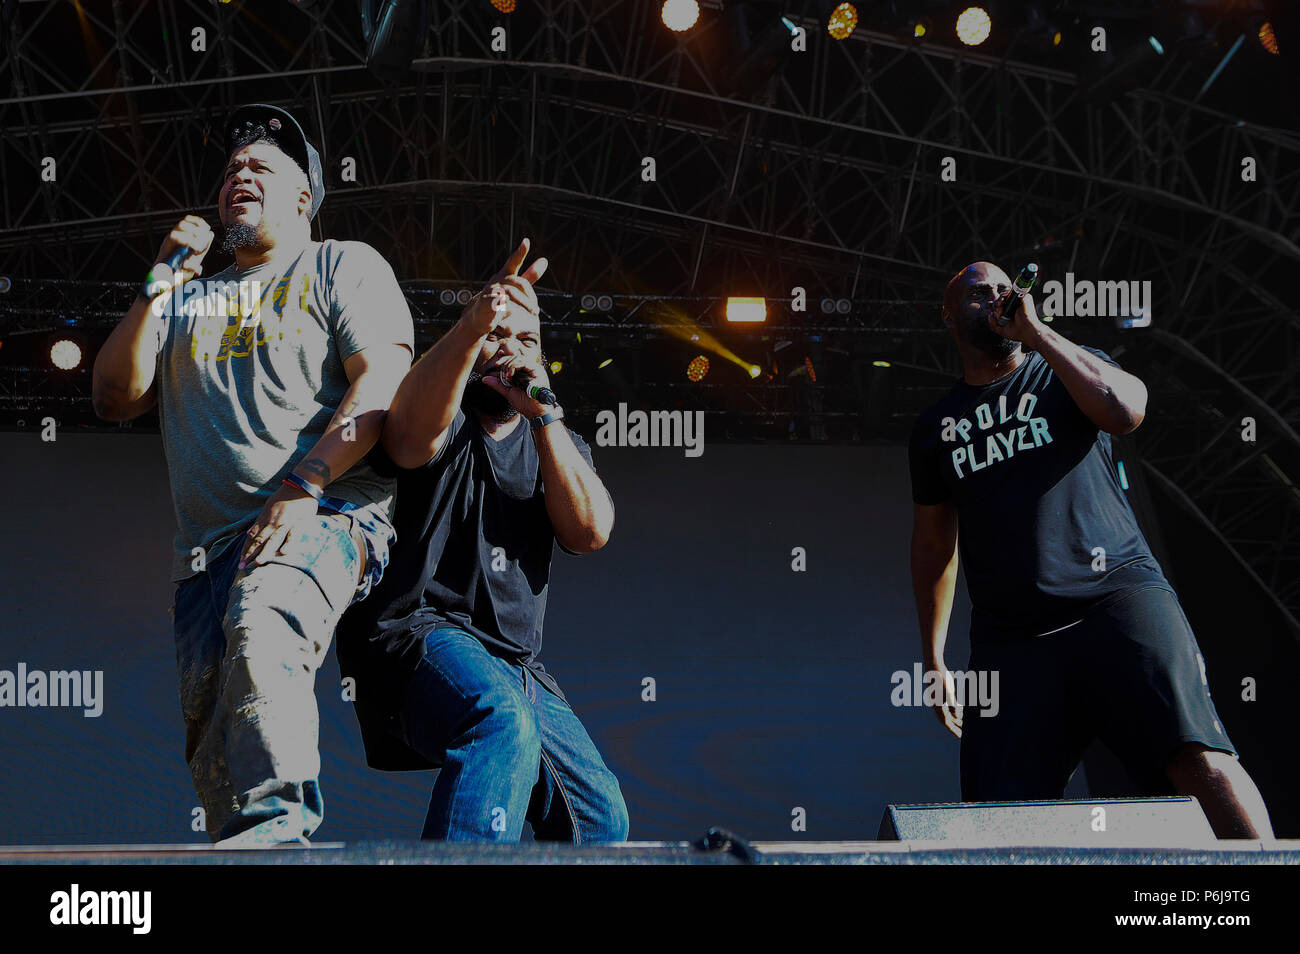 Glasgow, UK. 30th Jun, 2018. Fiesta X FOLD Festival Glasgow Glasgow.   The inaugural Fiesta X FOLD Festival in Kelvingrove Park, Glasgow.  Pictured are De La Soul performing on the Main Stage on Saturday 30th June 2018   Picture © Andy Buchanan Credit: Andy Buchanan/Alamy Live News Credit: Andy Buchanan/Alamy Live News Stock Photo